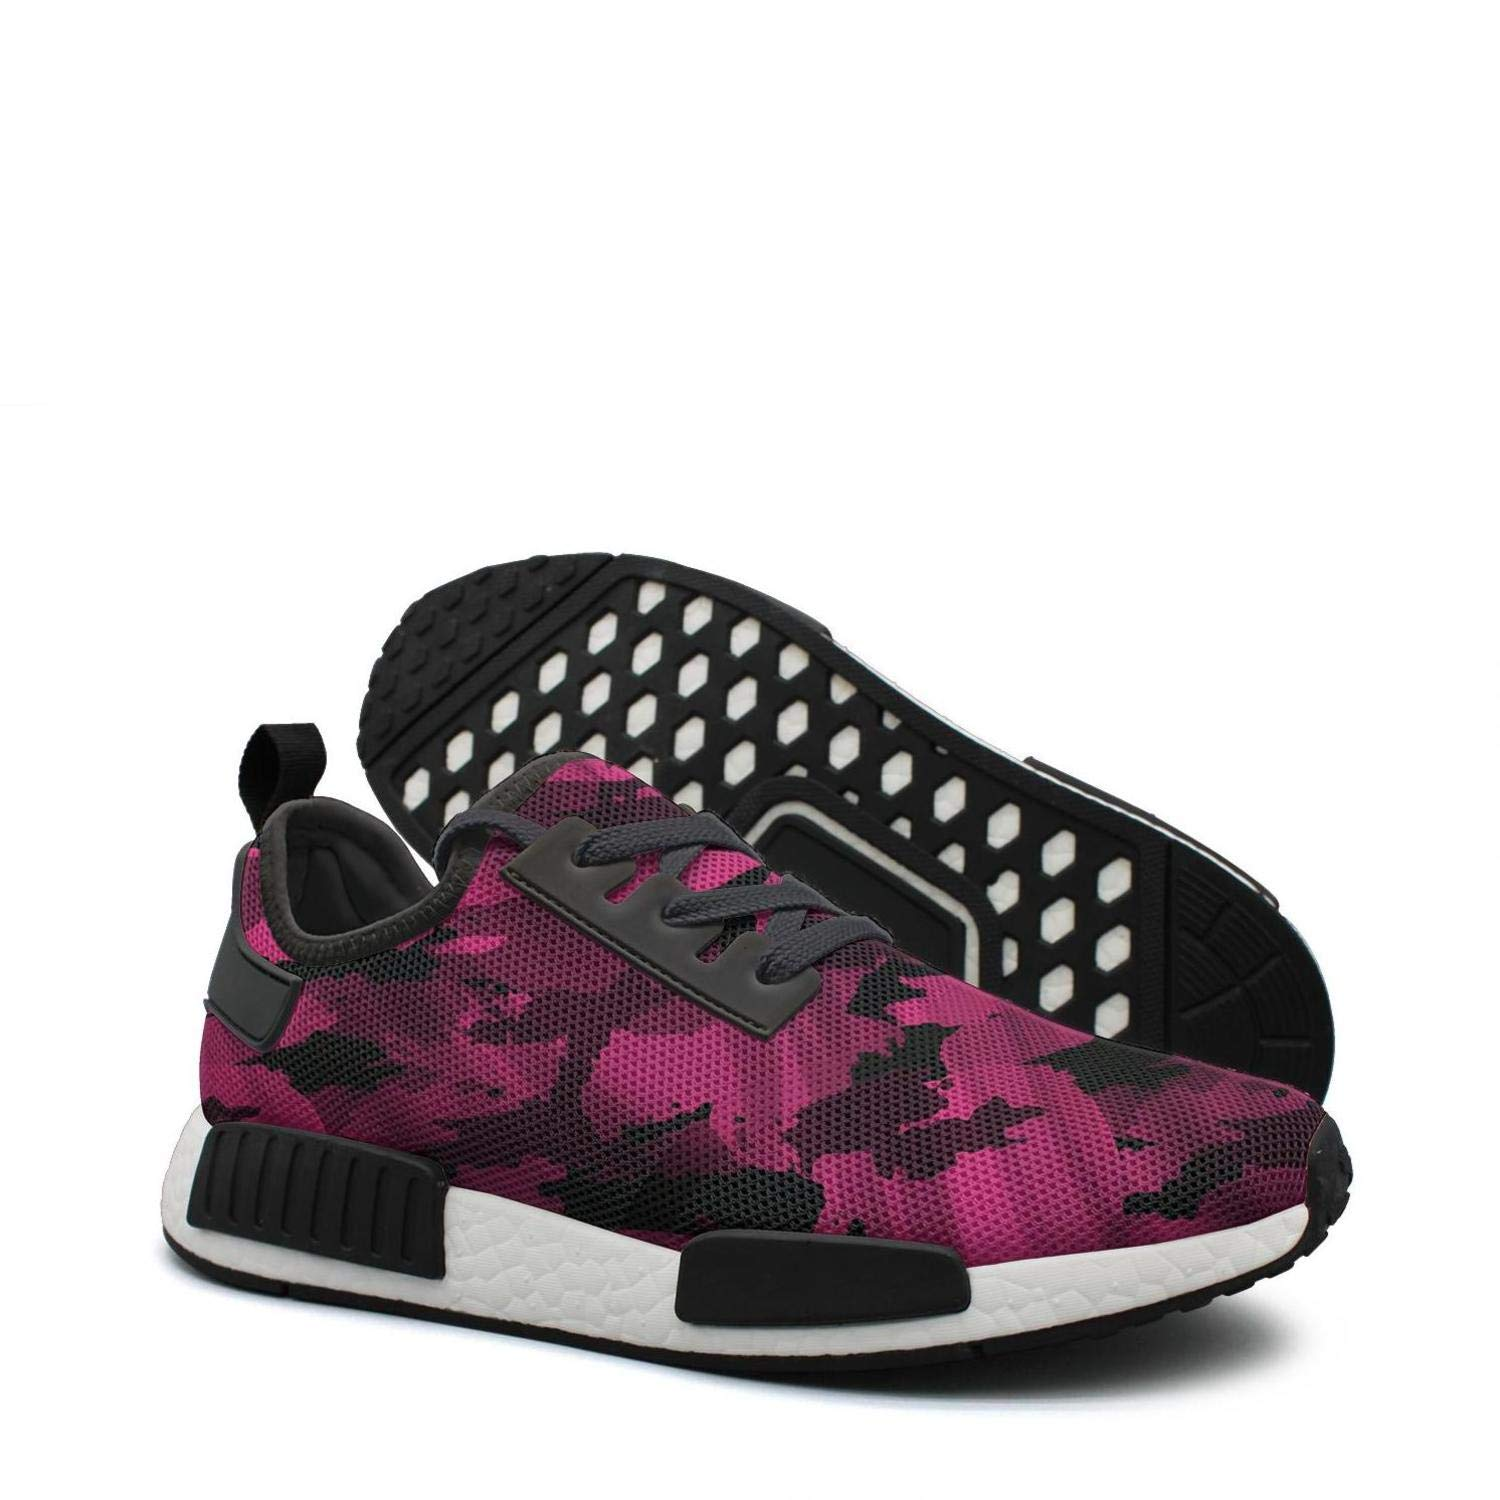 factory authentic 61695 c7494 Amazon.com: Pink camo logo youth women running shoes nmds r1 ...